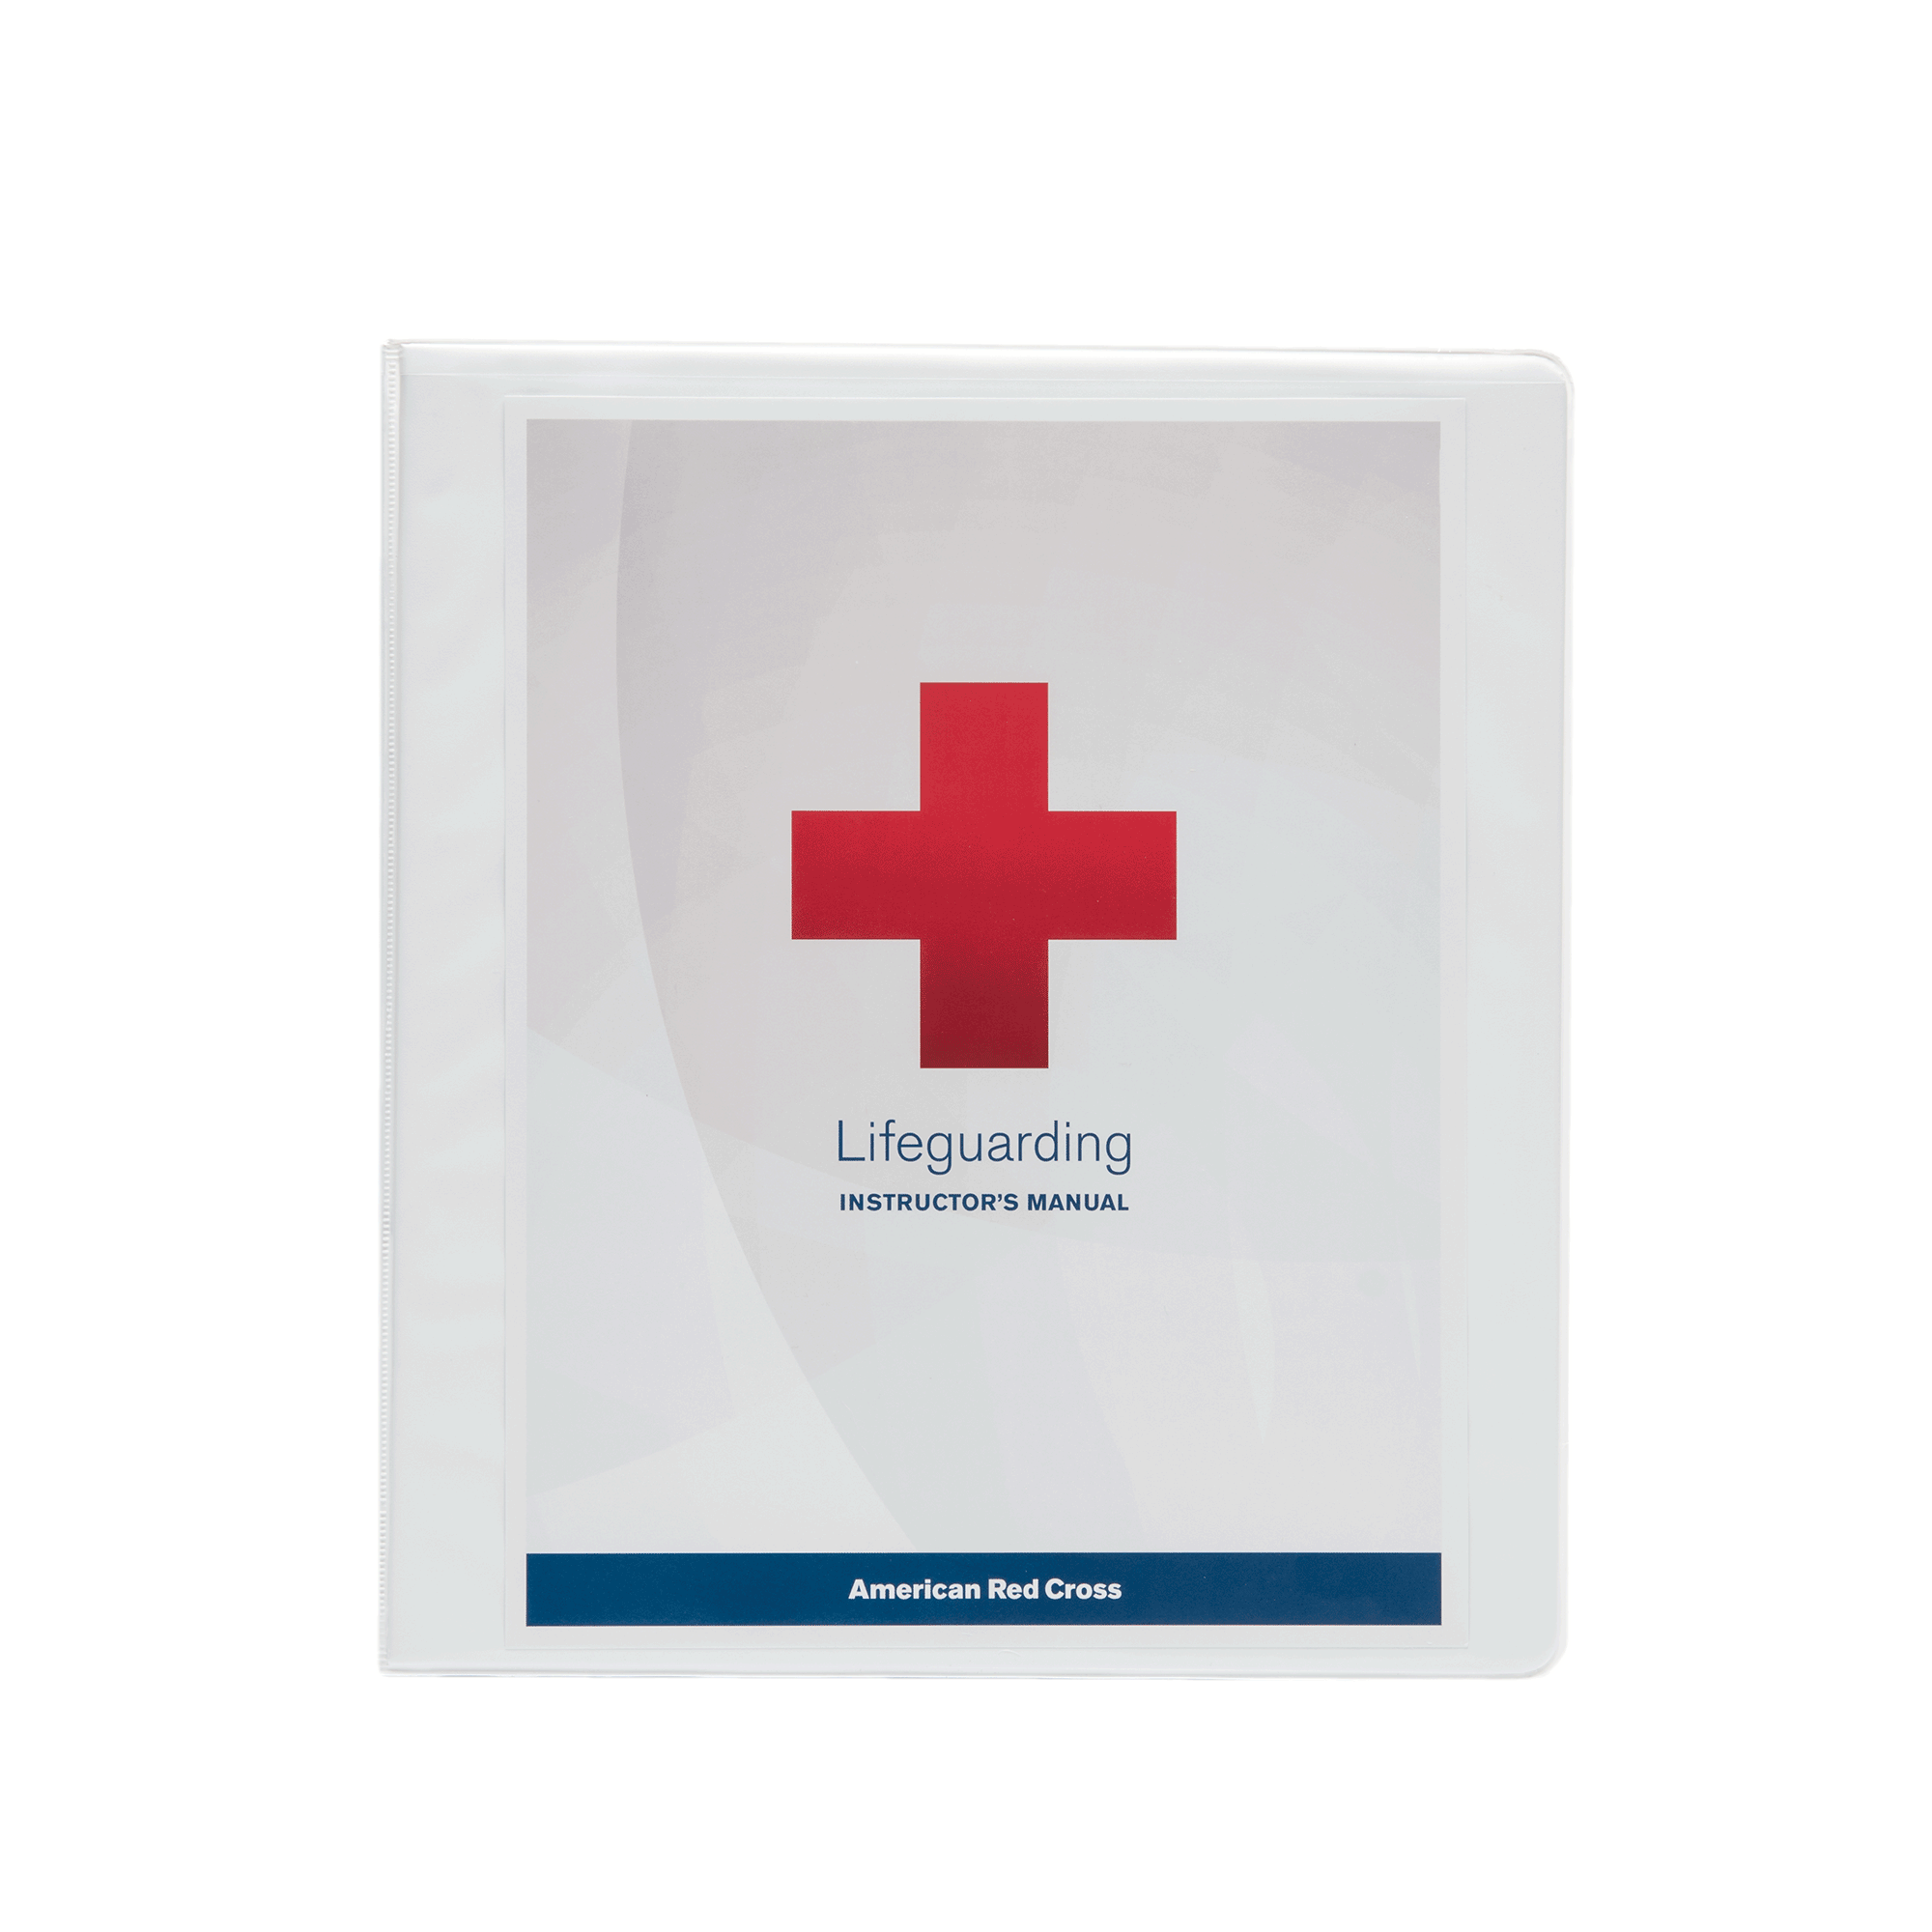 lifeguarding instructor s manual red cross store rh redcross org american red cross lifeguard manual online american red cross lifeguard manual 2017